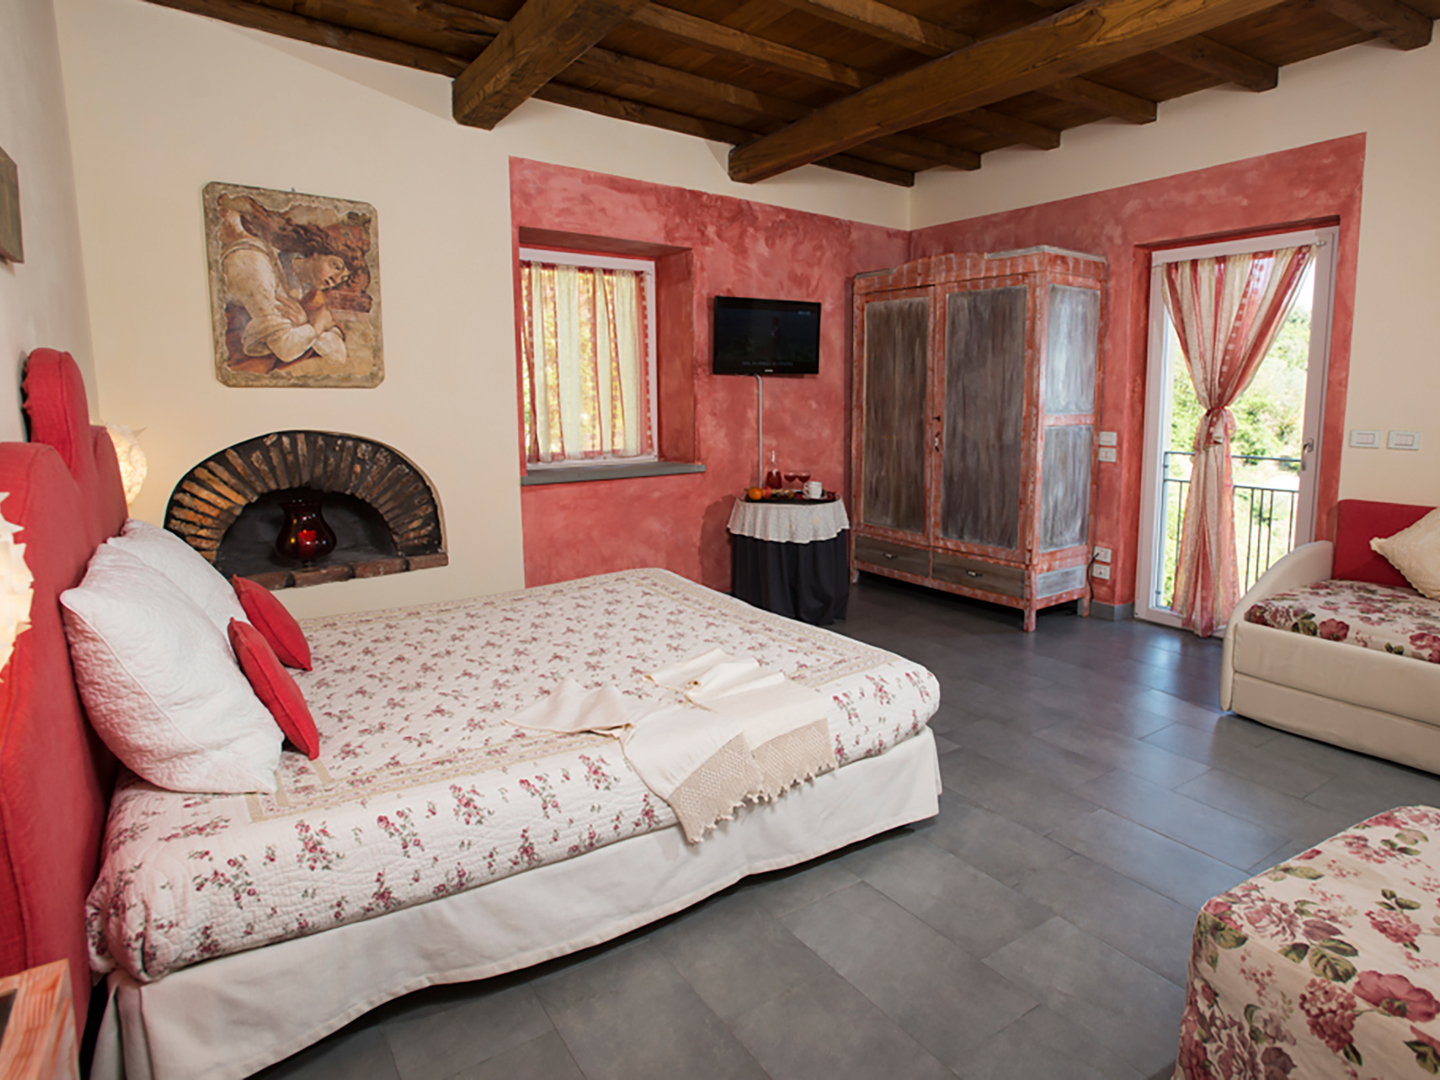 Carasco Bed and Breakfast